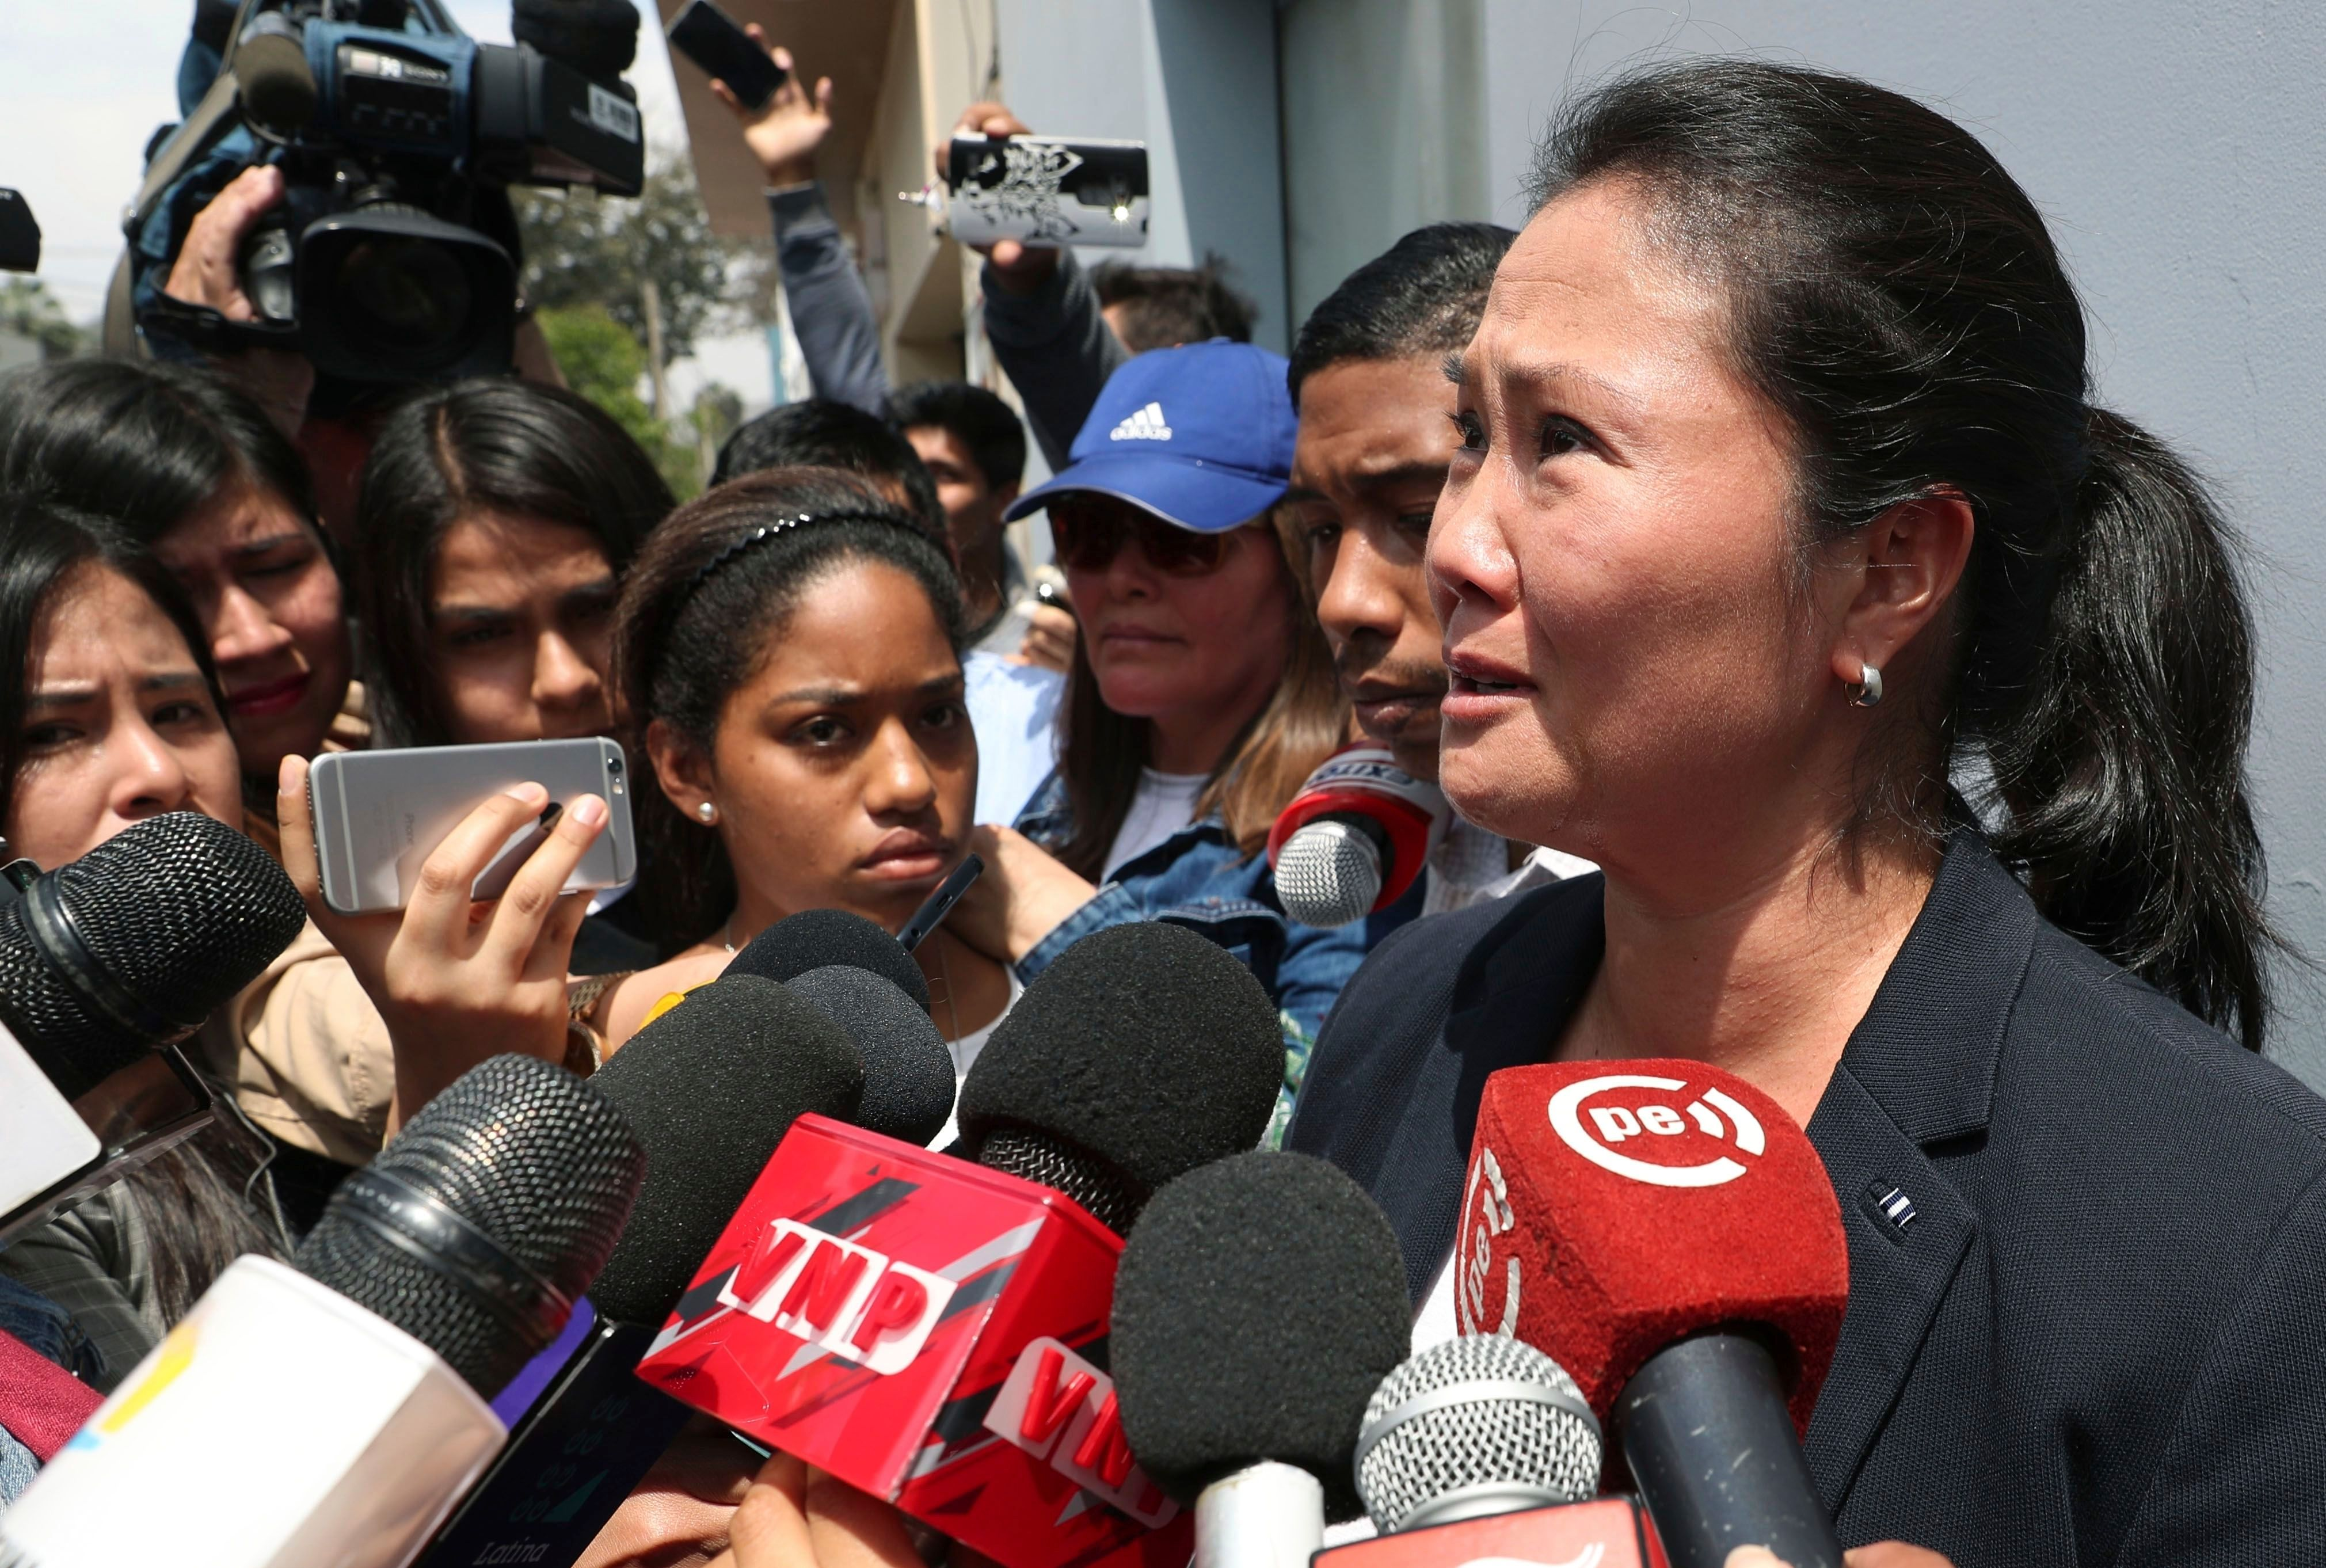 Keiko Fujimori, daughter of Peru's former President Alberto Fujimori, cries as she speaks with reporters outside of her father's home in Lima, Peru, on Oct. 3. Peru's Supreme Court has overturned a medical pardon for former President Alberto Fujimori and ordered the strongman be returned to jail to serve out a long sentence for human rights abuses. On Wednesday, Keiko Fujimori was detained as a result of a campaign finance probe.